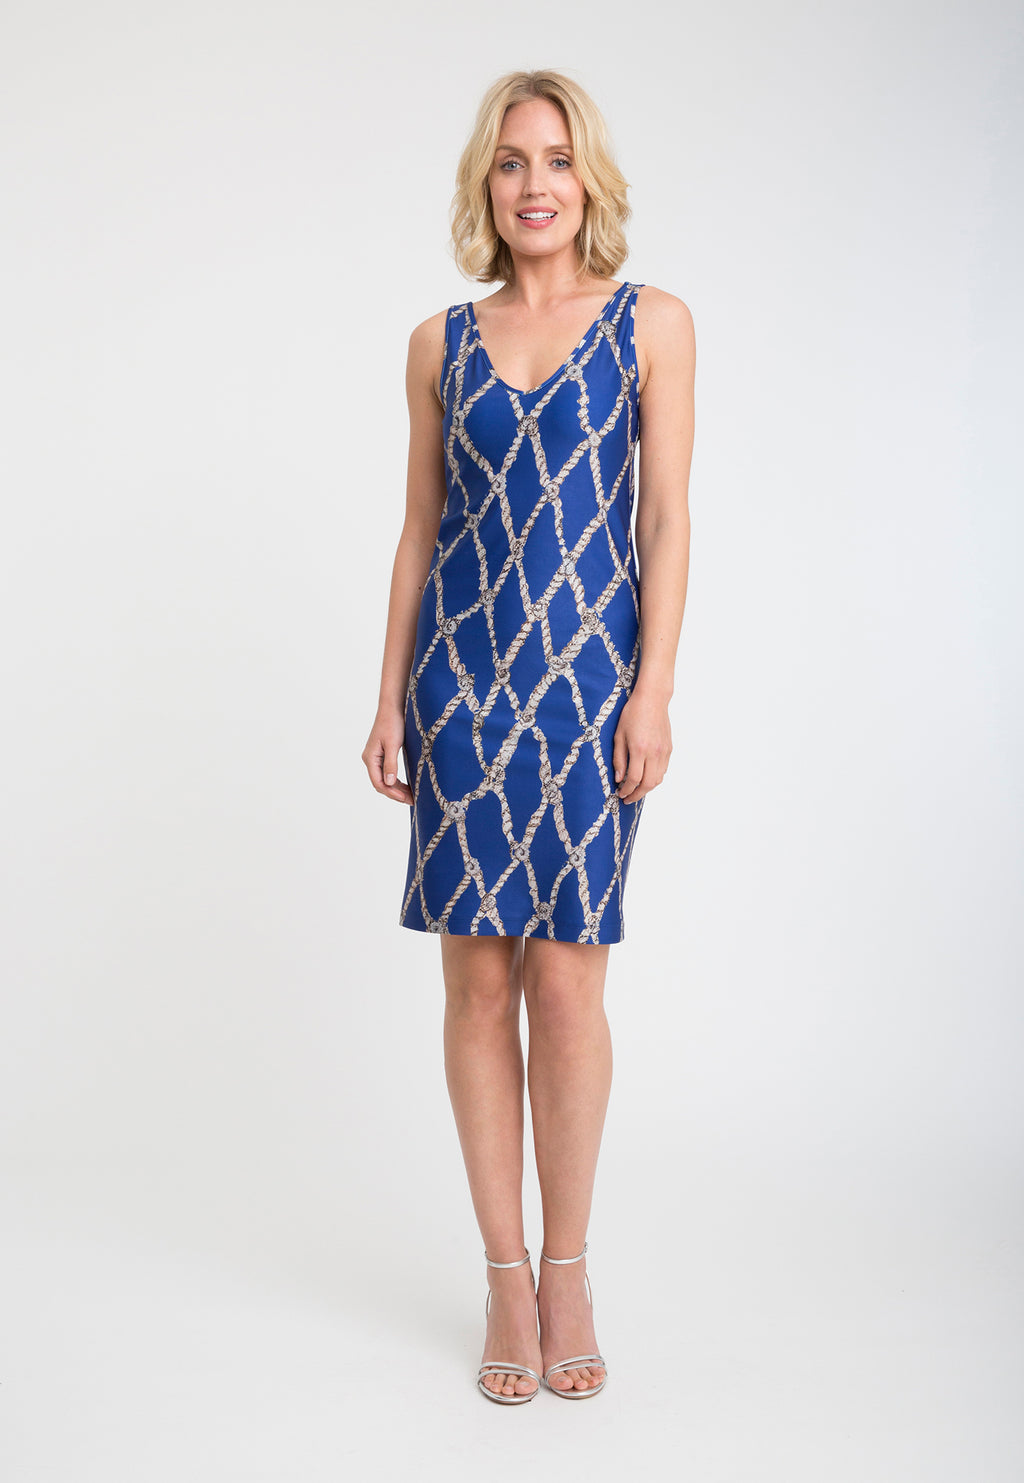 Lavinia Short Dress in Sea Rope